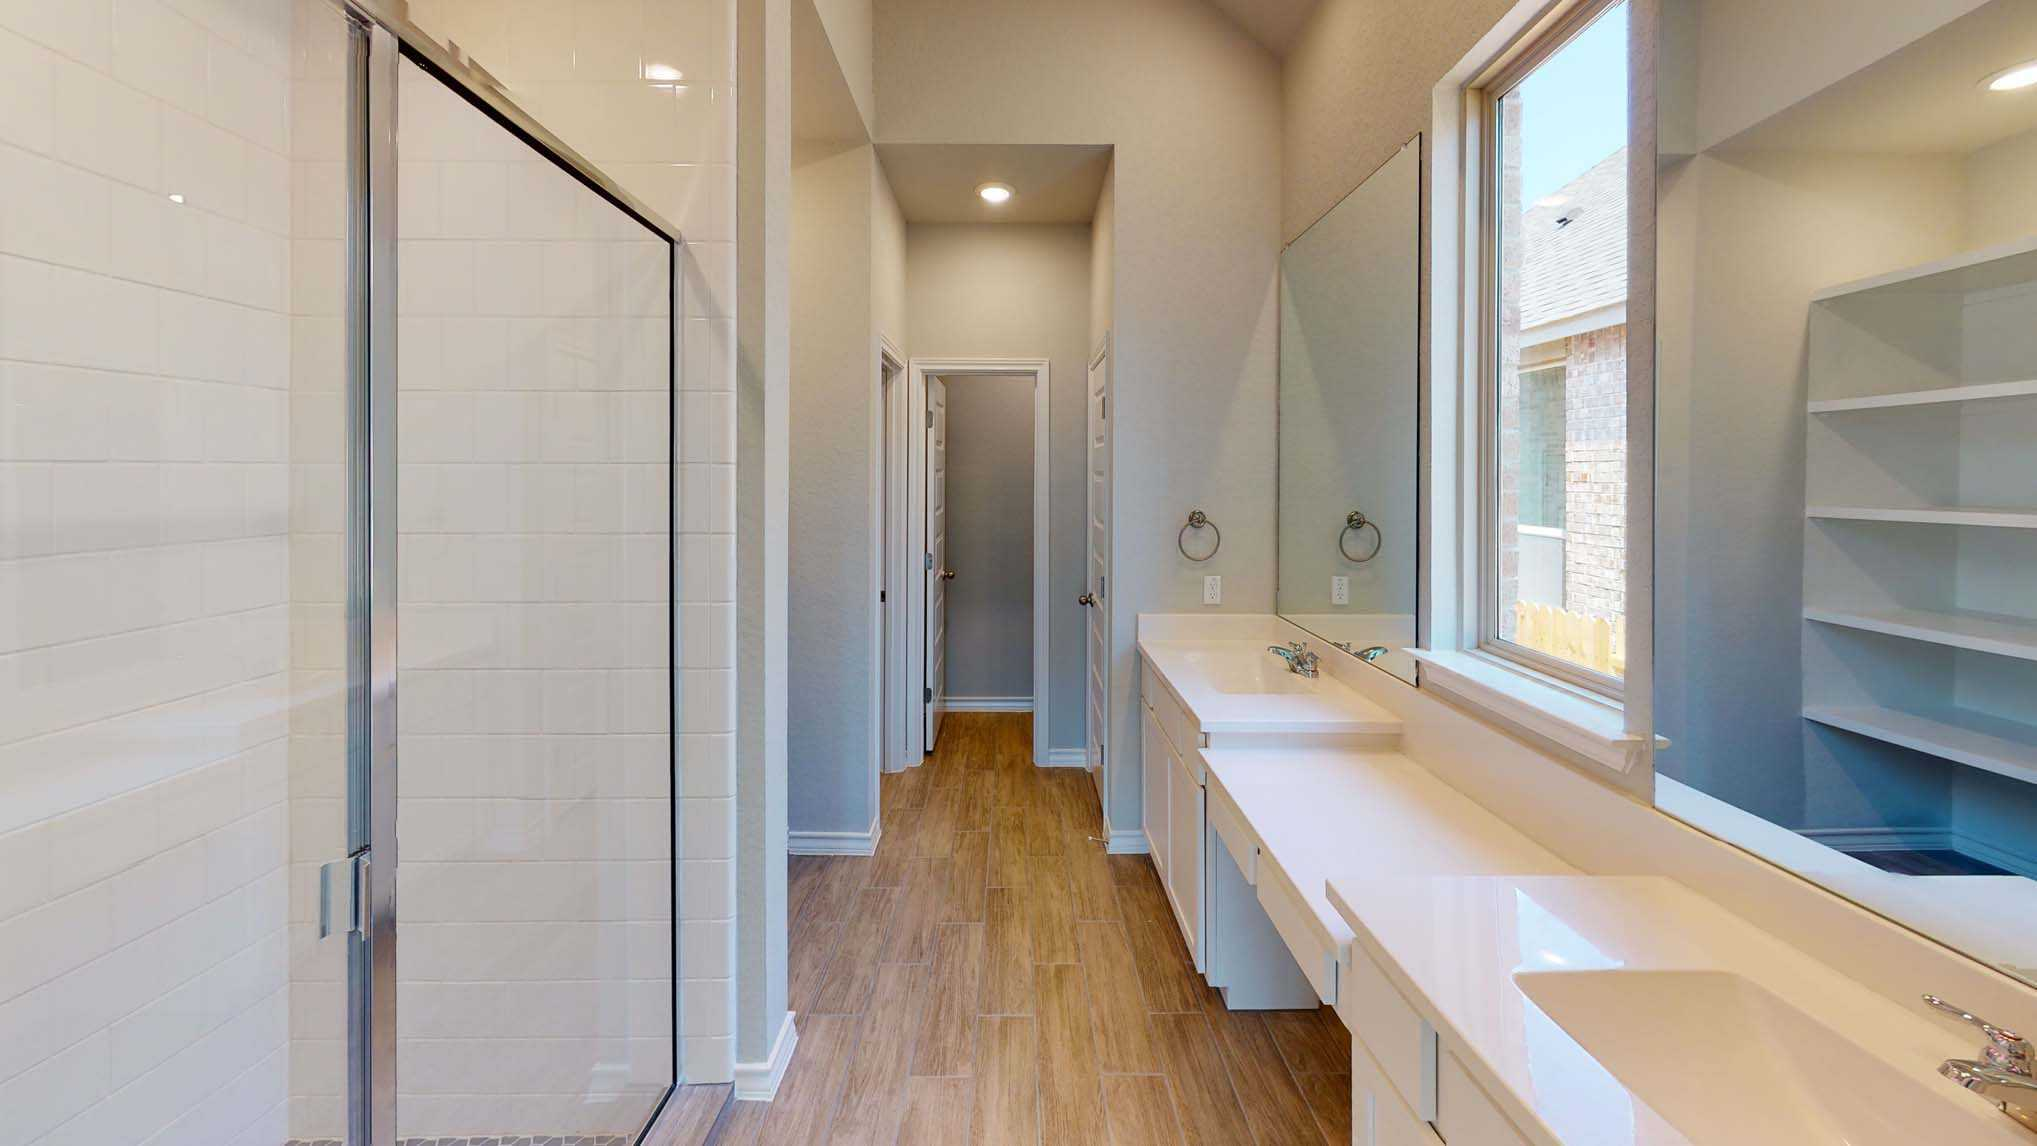 Bathroom featured in the Plan Dorchester By Highland Homes in San Antonio, TX